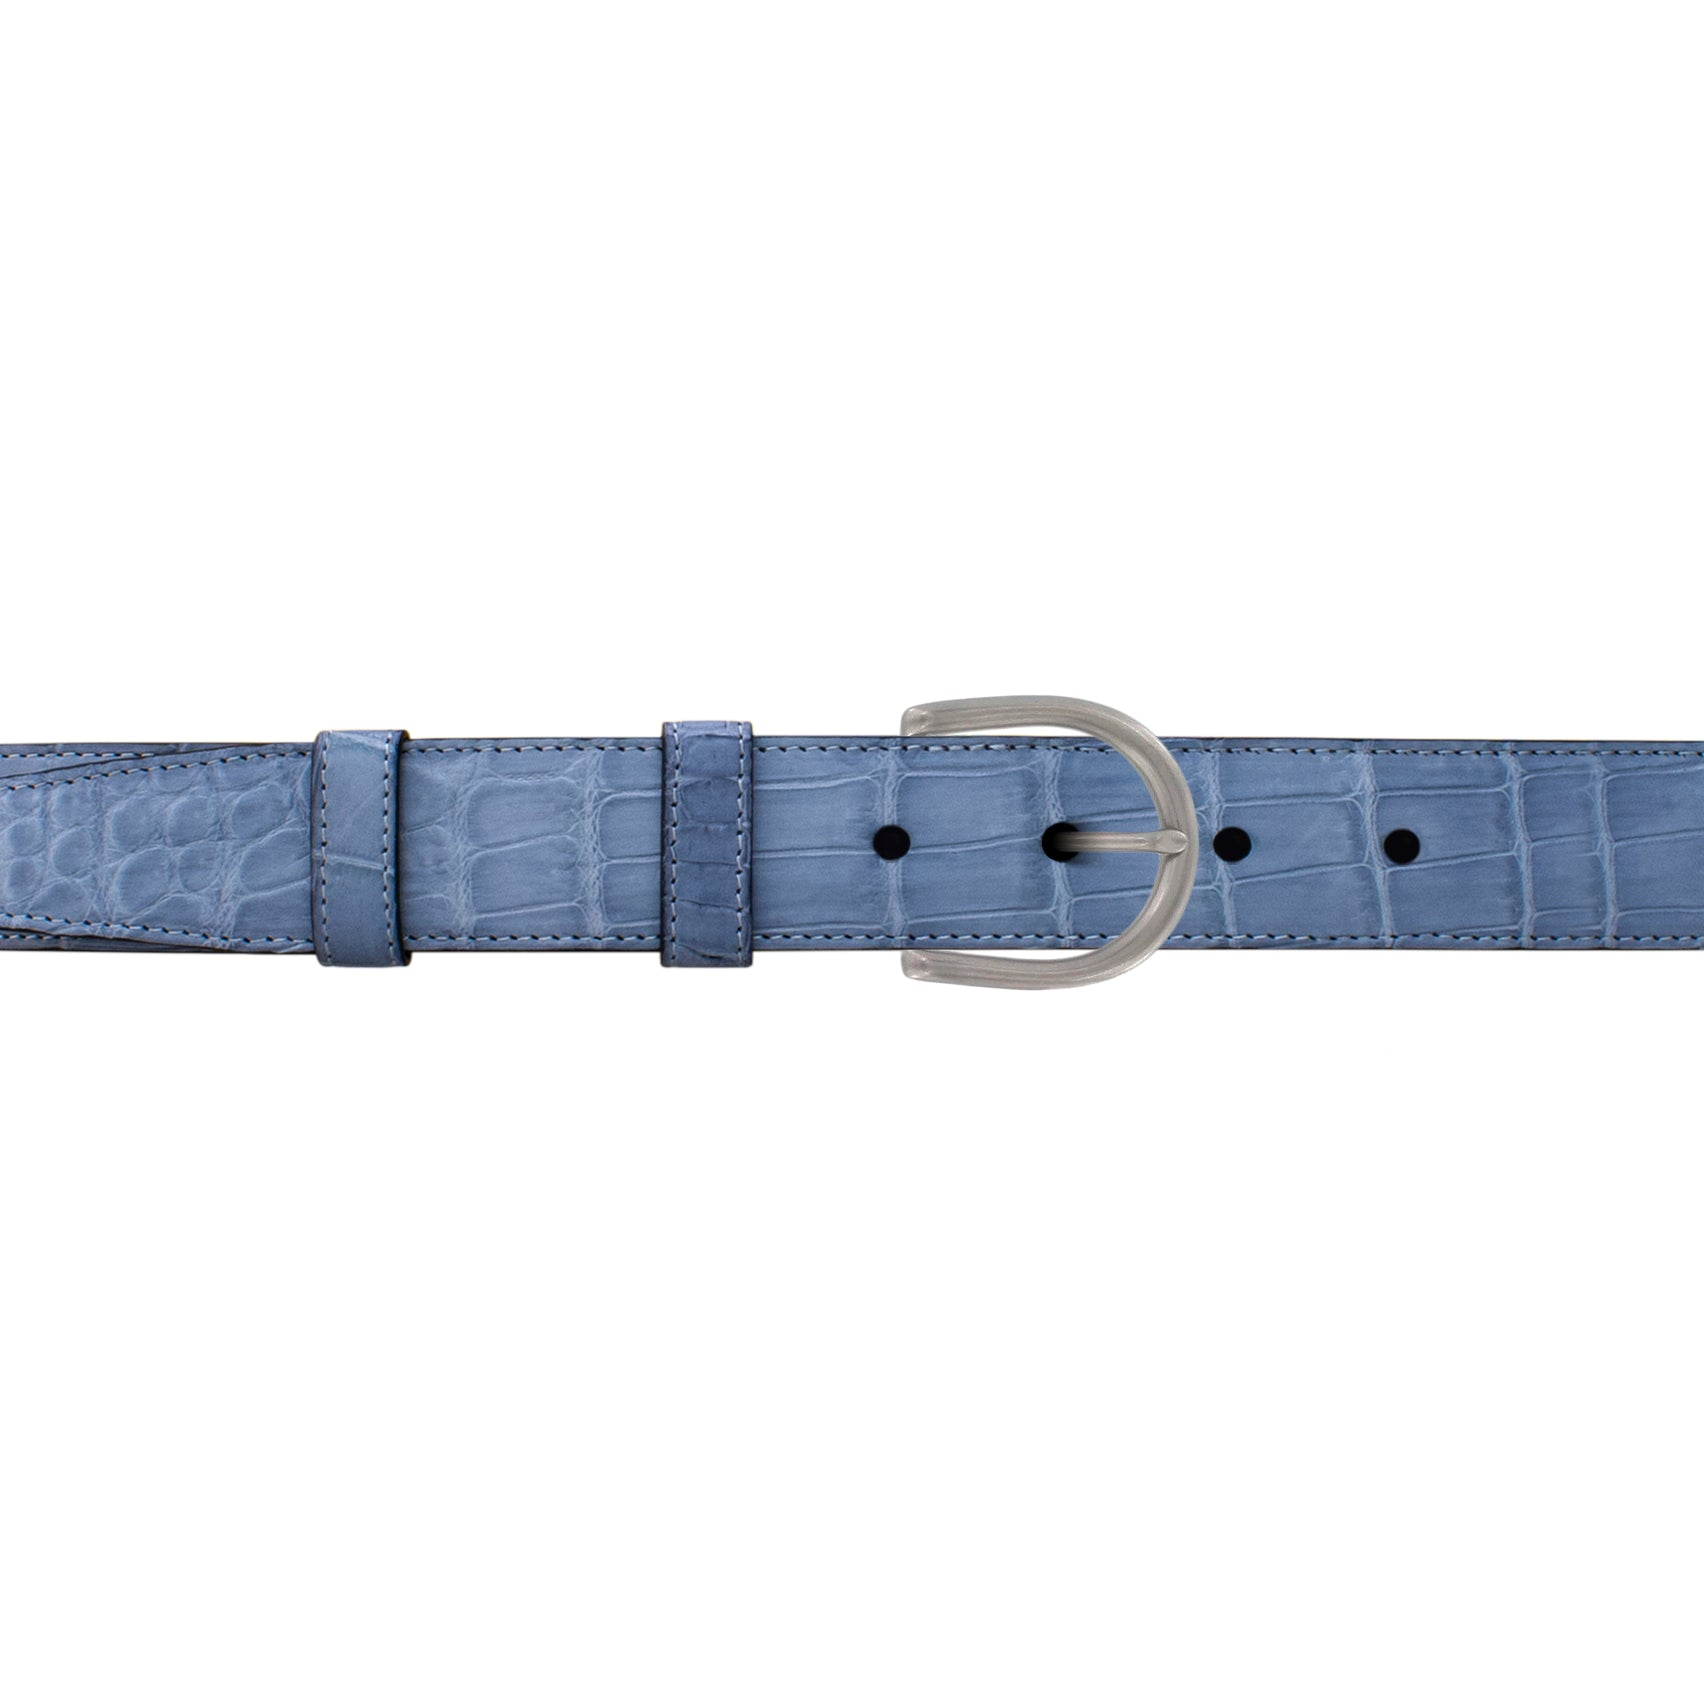 "1"" Arctic Classic Belt with Denver Casual Buckle in Matt Nickel"